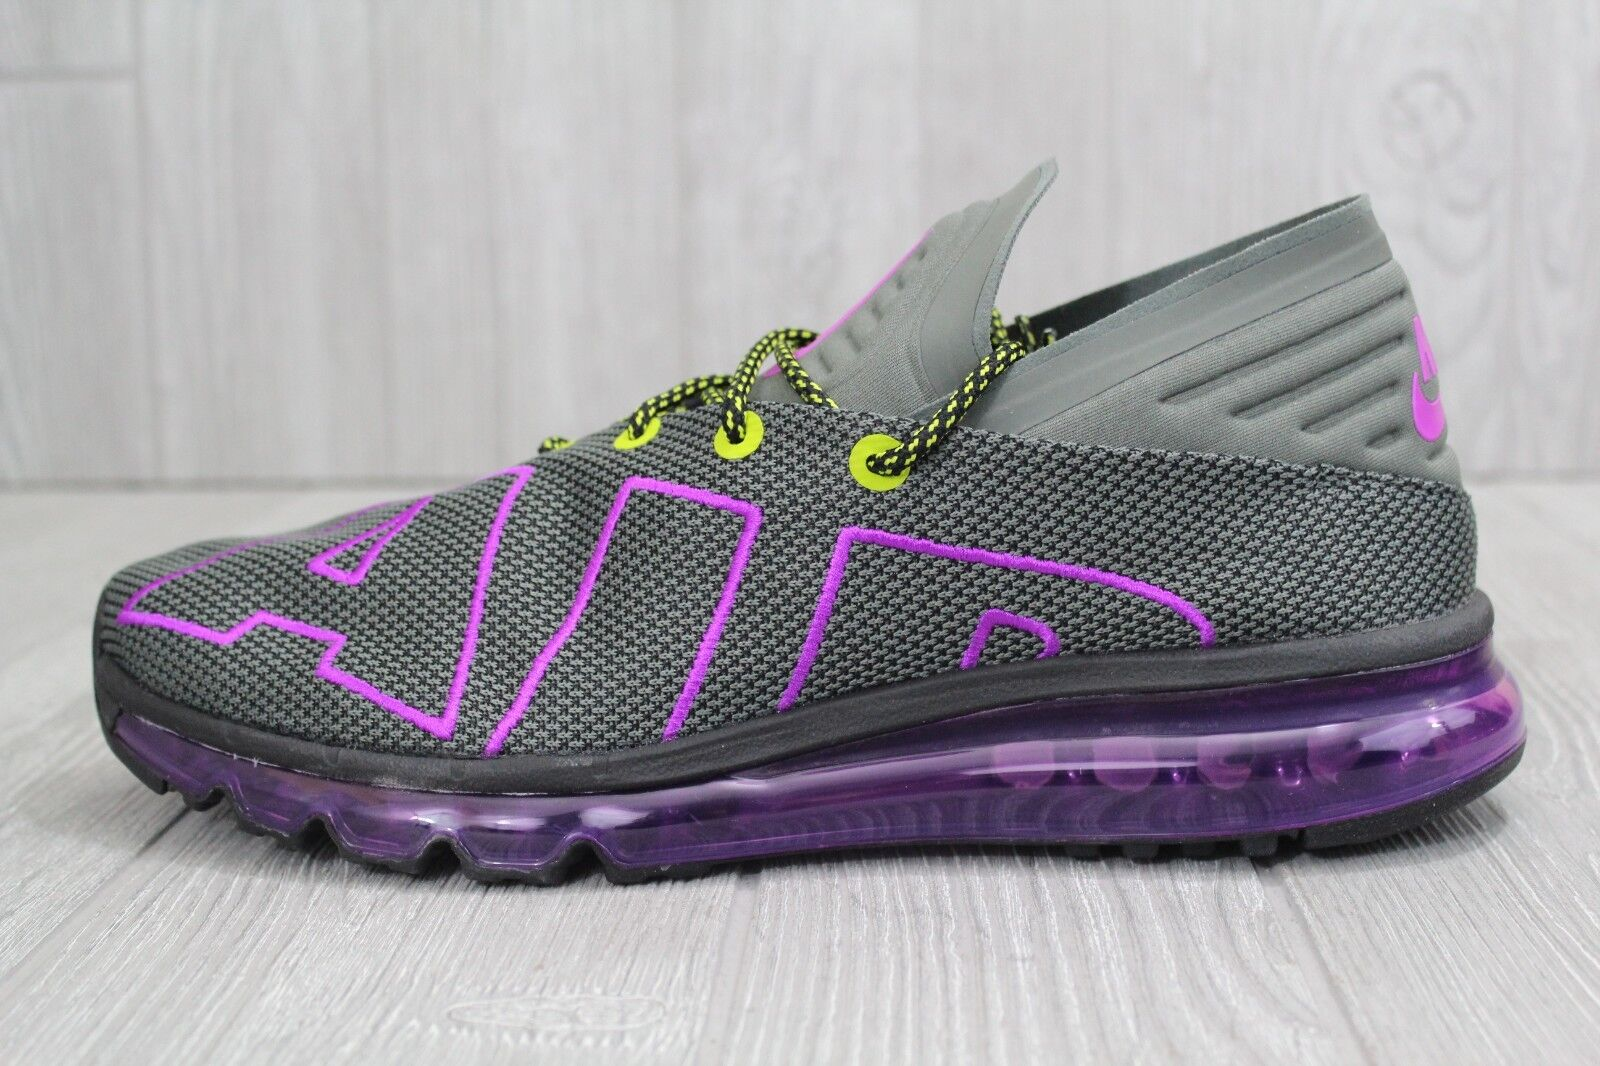 30 NEW Men's Nike Air Max Flair Up Tempo Gray Purple Shoes AH9711-001 8.5 10 11